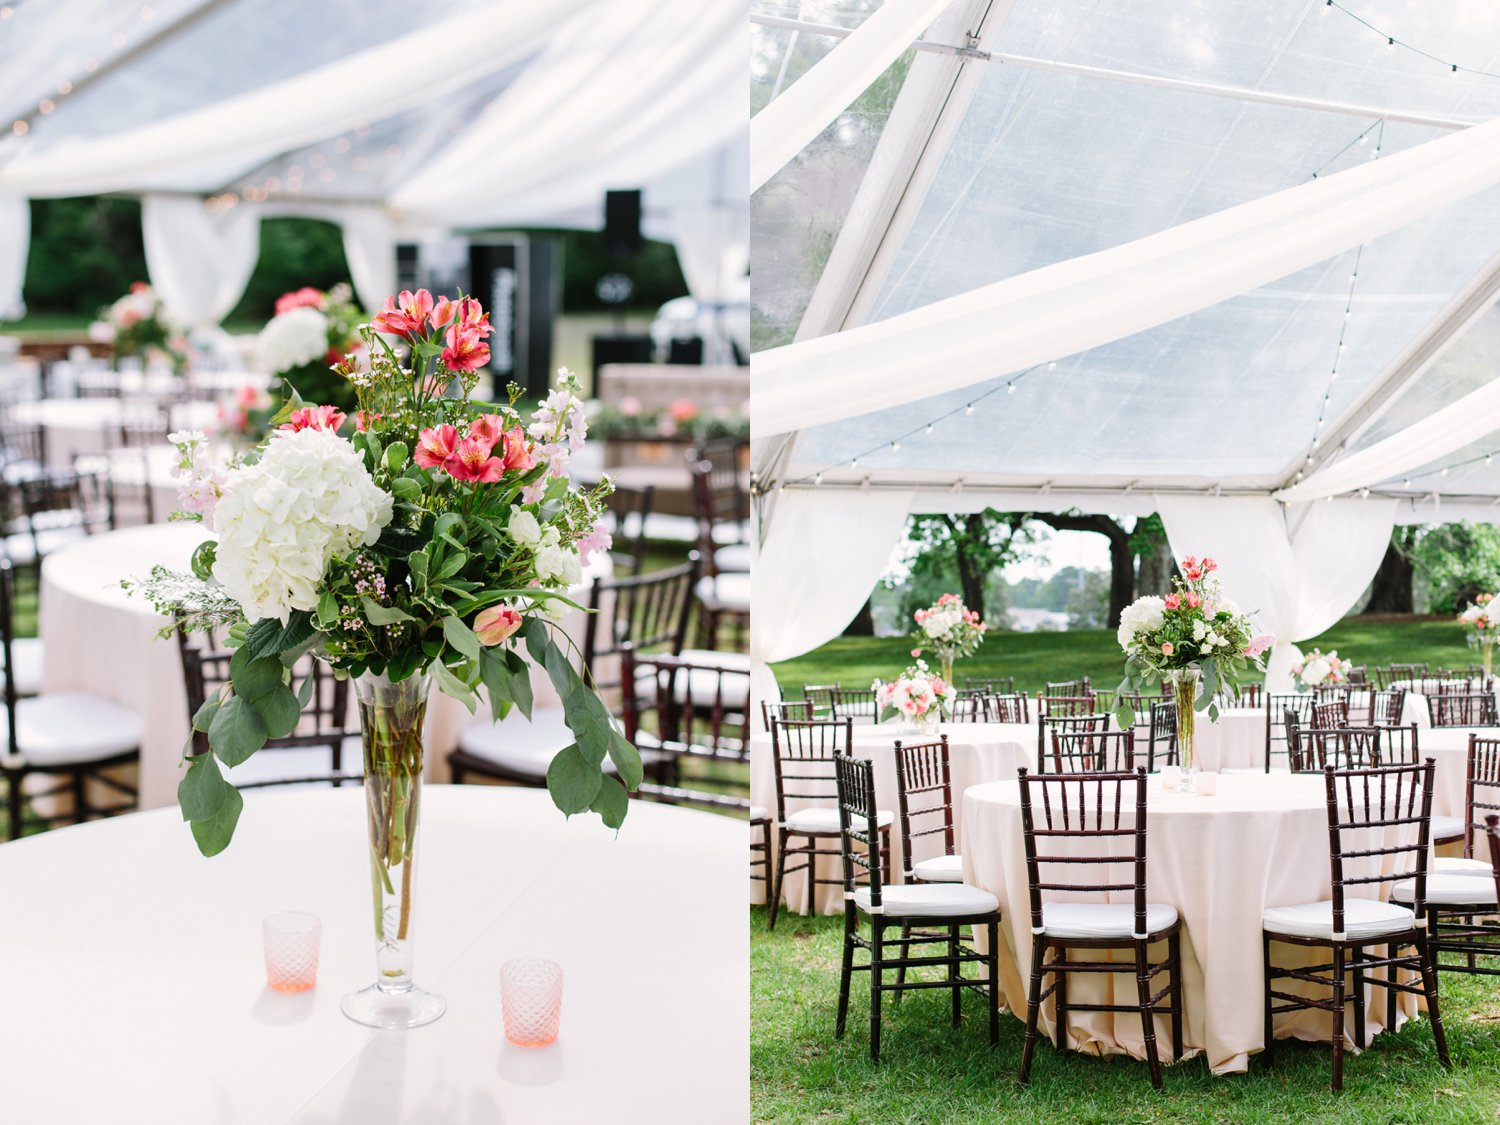 Lindsey_A_Miller_Photography_mcleod_plantation_wedding_charleston_south_carolina_clear_tent_spring_mod_events_059.jpg